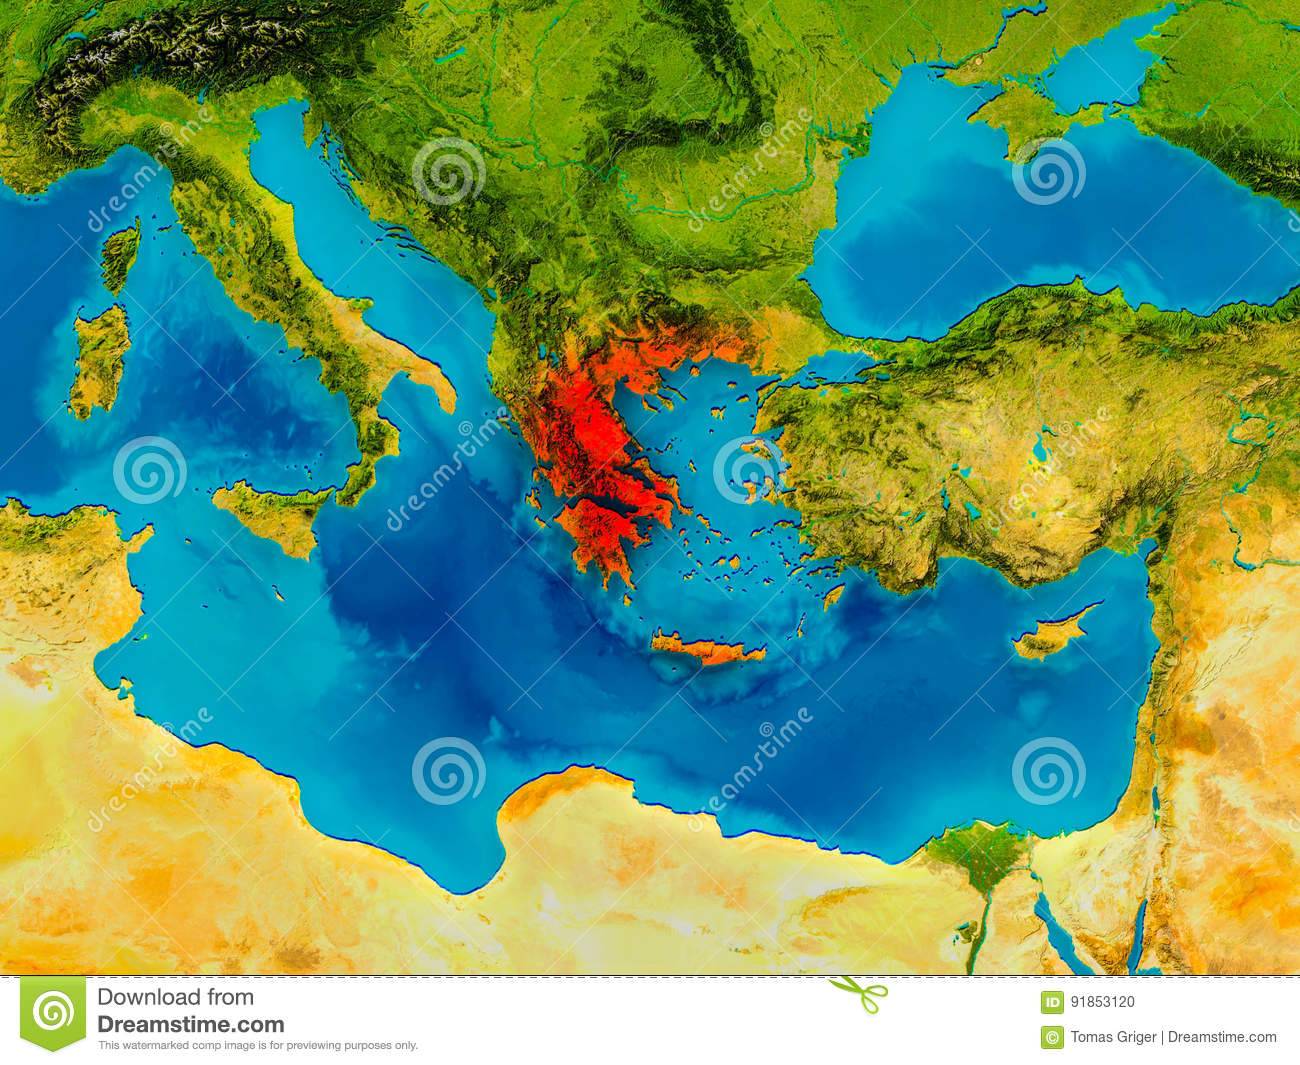 Greece on physical map stock illustration. Illustration of europe ...